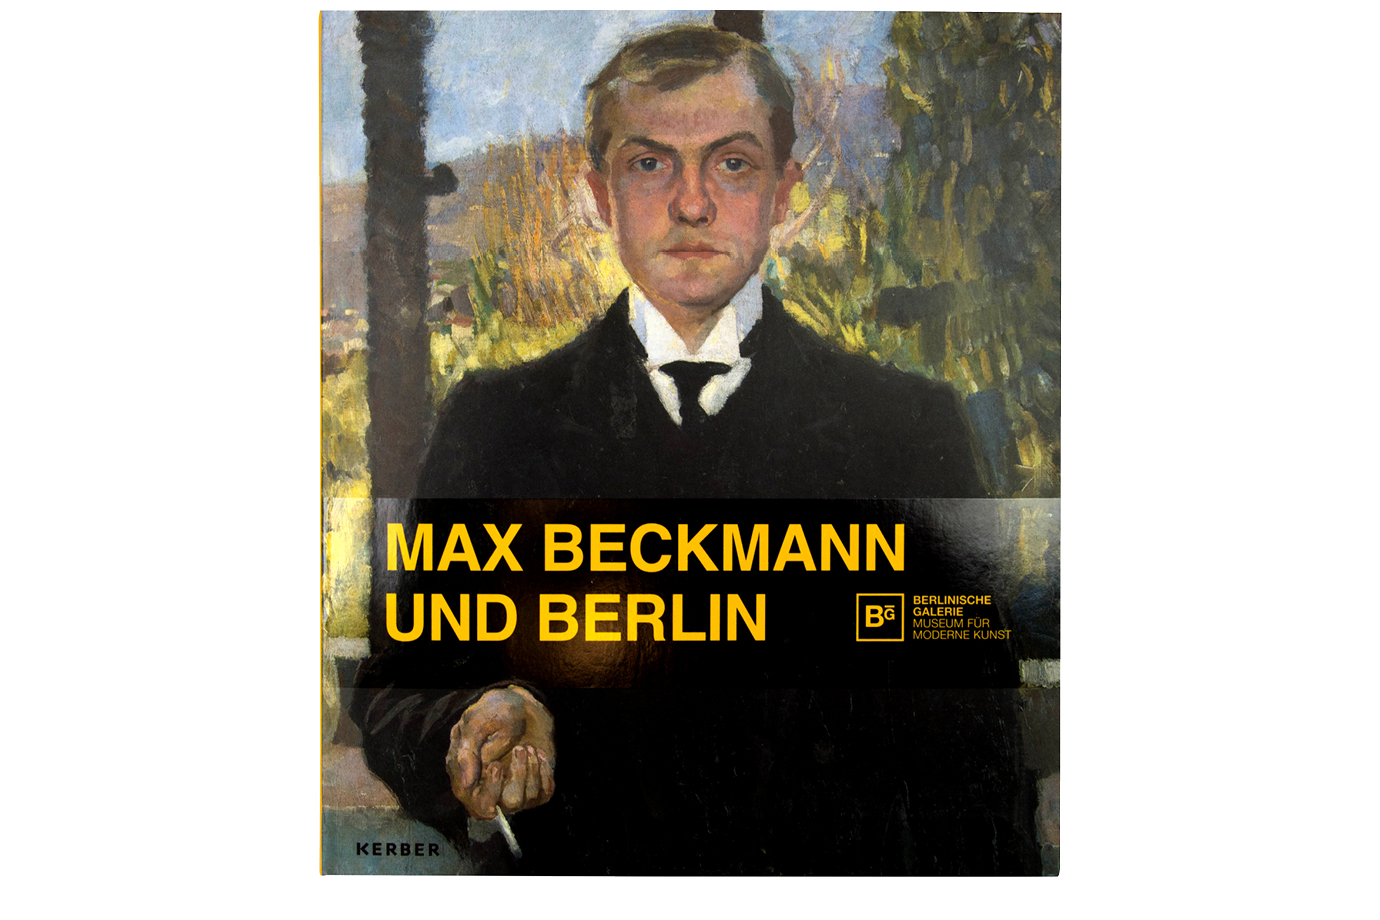 http://e-o-t.de/wordpress/wp-content/uploads/2017/07/2015_eot-Beckmann-Book-.jpg